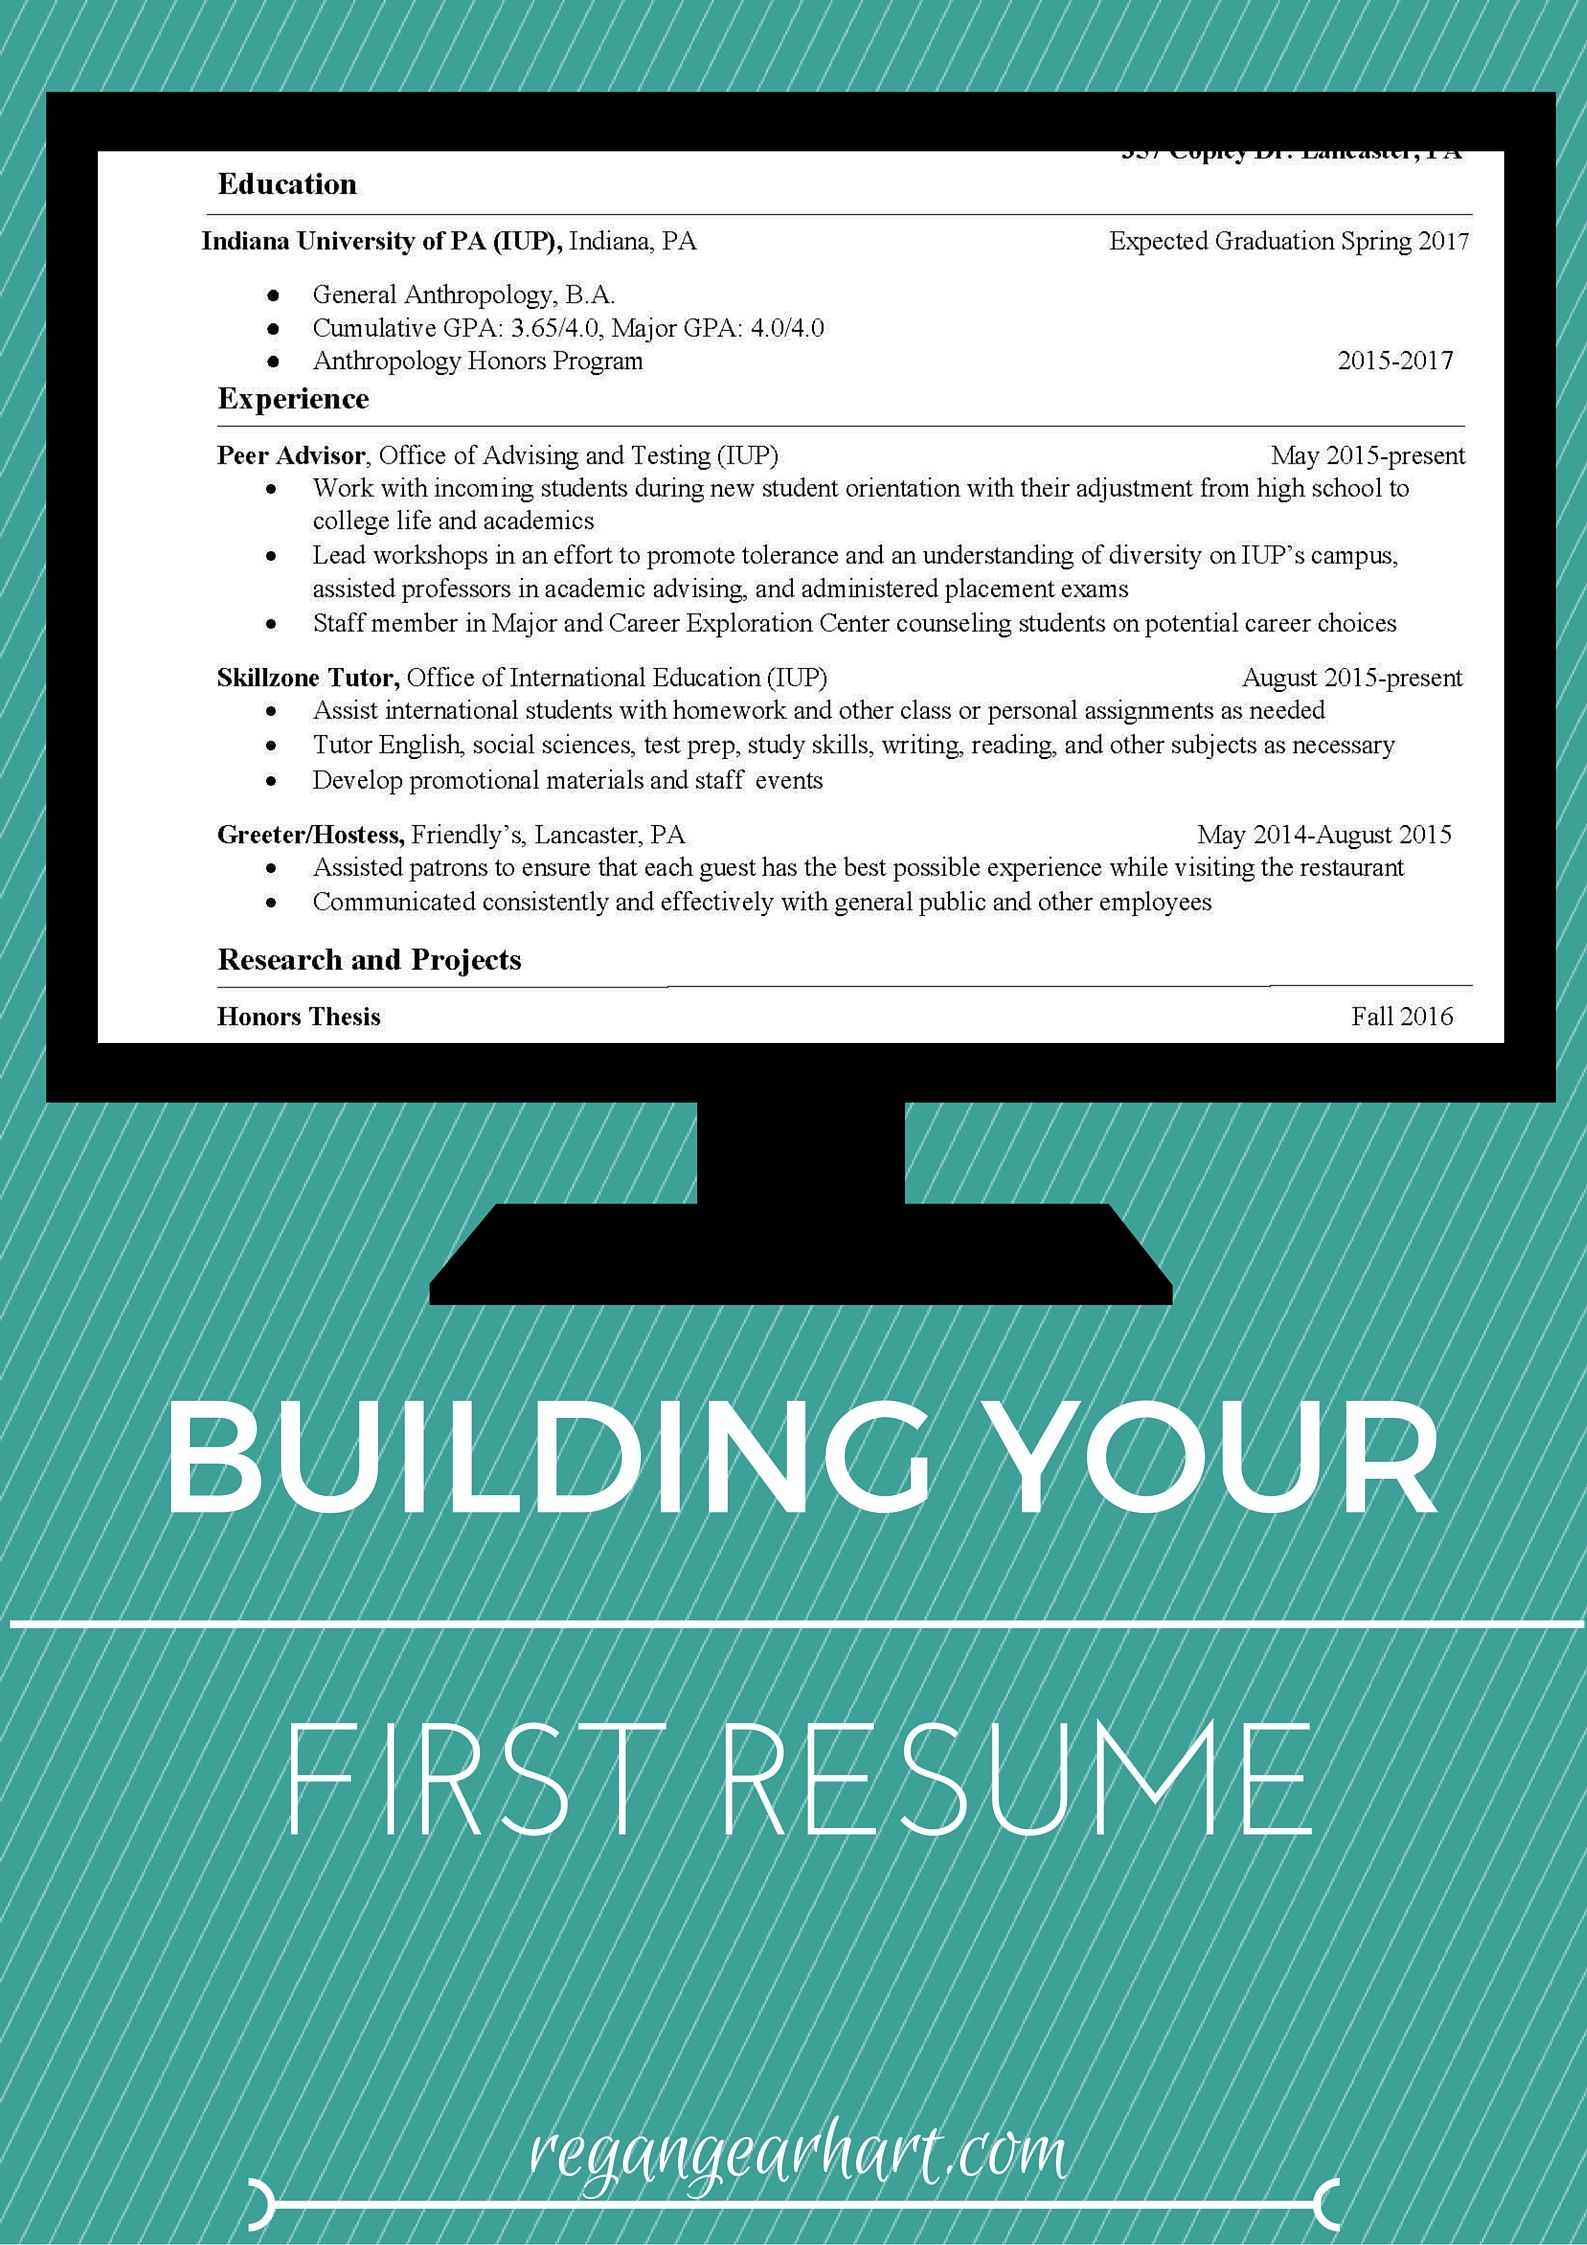 Career Builder Resume Template Tips And Tricks On How To Start Building Your First Resume